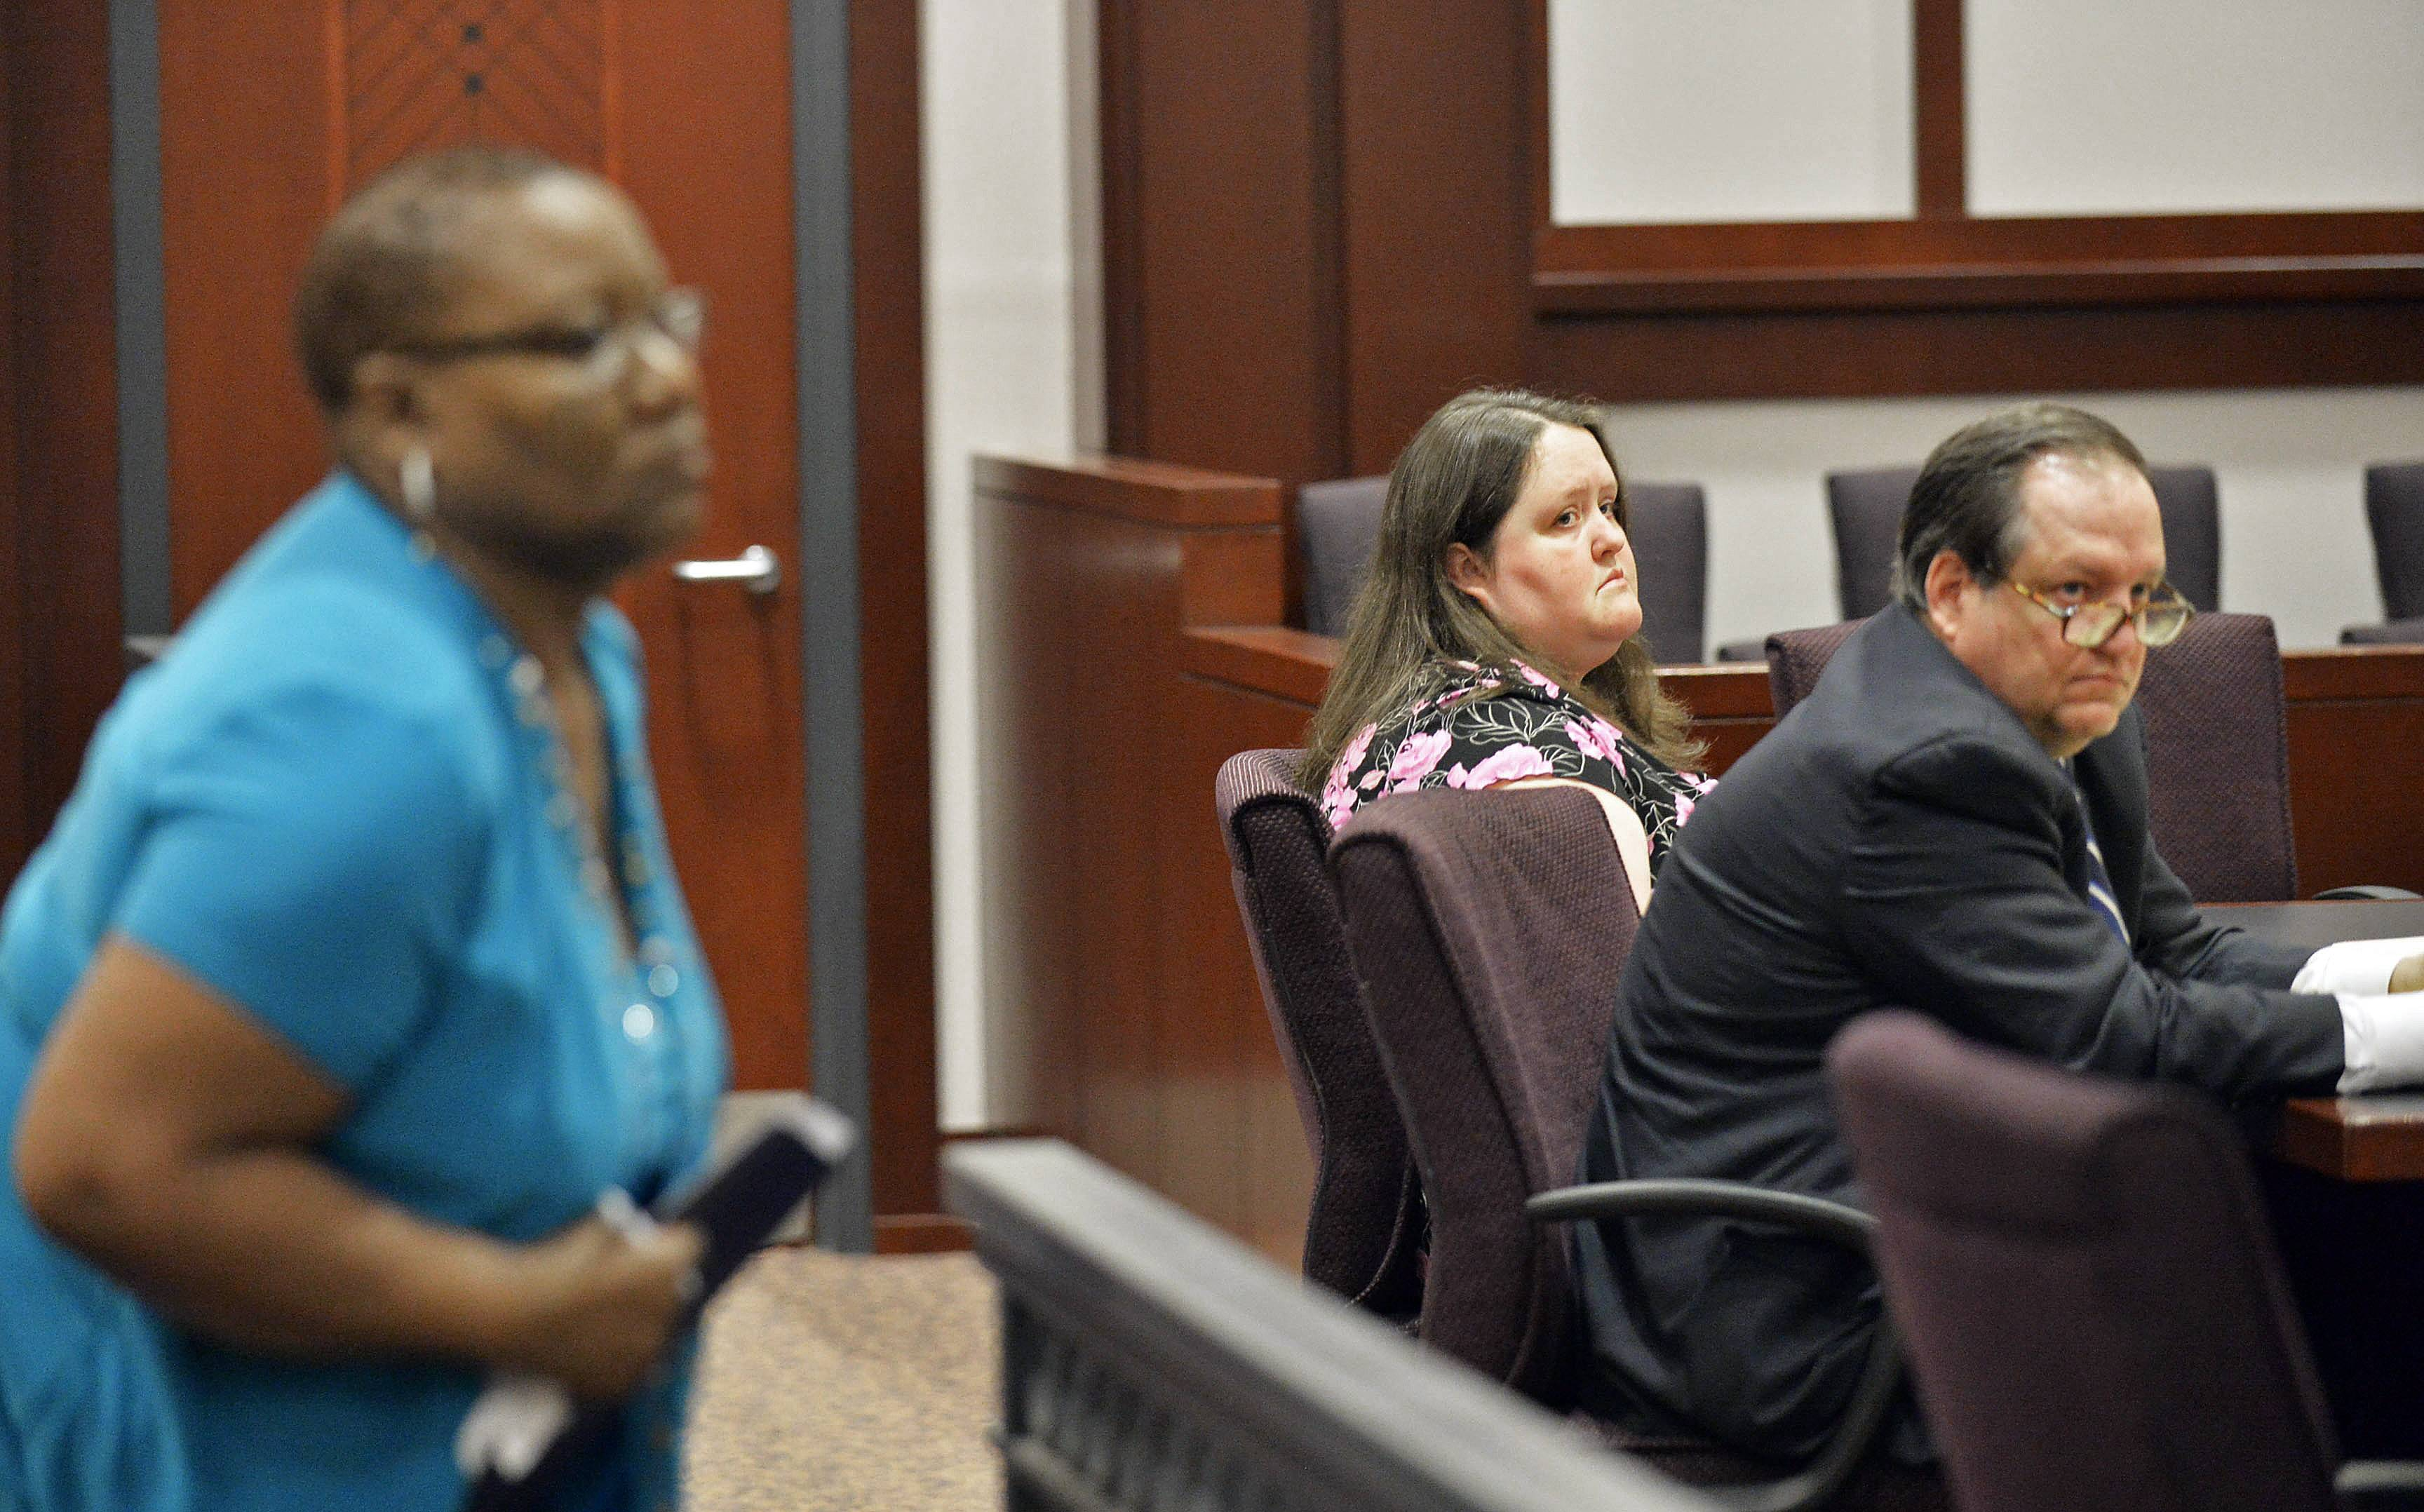 Rachael Michelle Rapraeger, center, sits with her attorney, Floyd Buford, after Sharon Holmes, left, read her statement to a Houston County Superior Court, in Perry, Ga., during a sentencing hearing. Rapraeger pleaded guilty this month to 10 misdemeanor charges of reckless conduct and one felony charge of computer forgery after she admitted falsifying hundreds of mammogram reports, one of whom's was Sharon Holmes'.